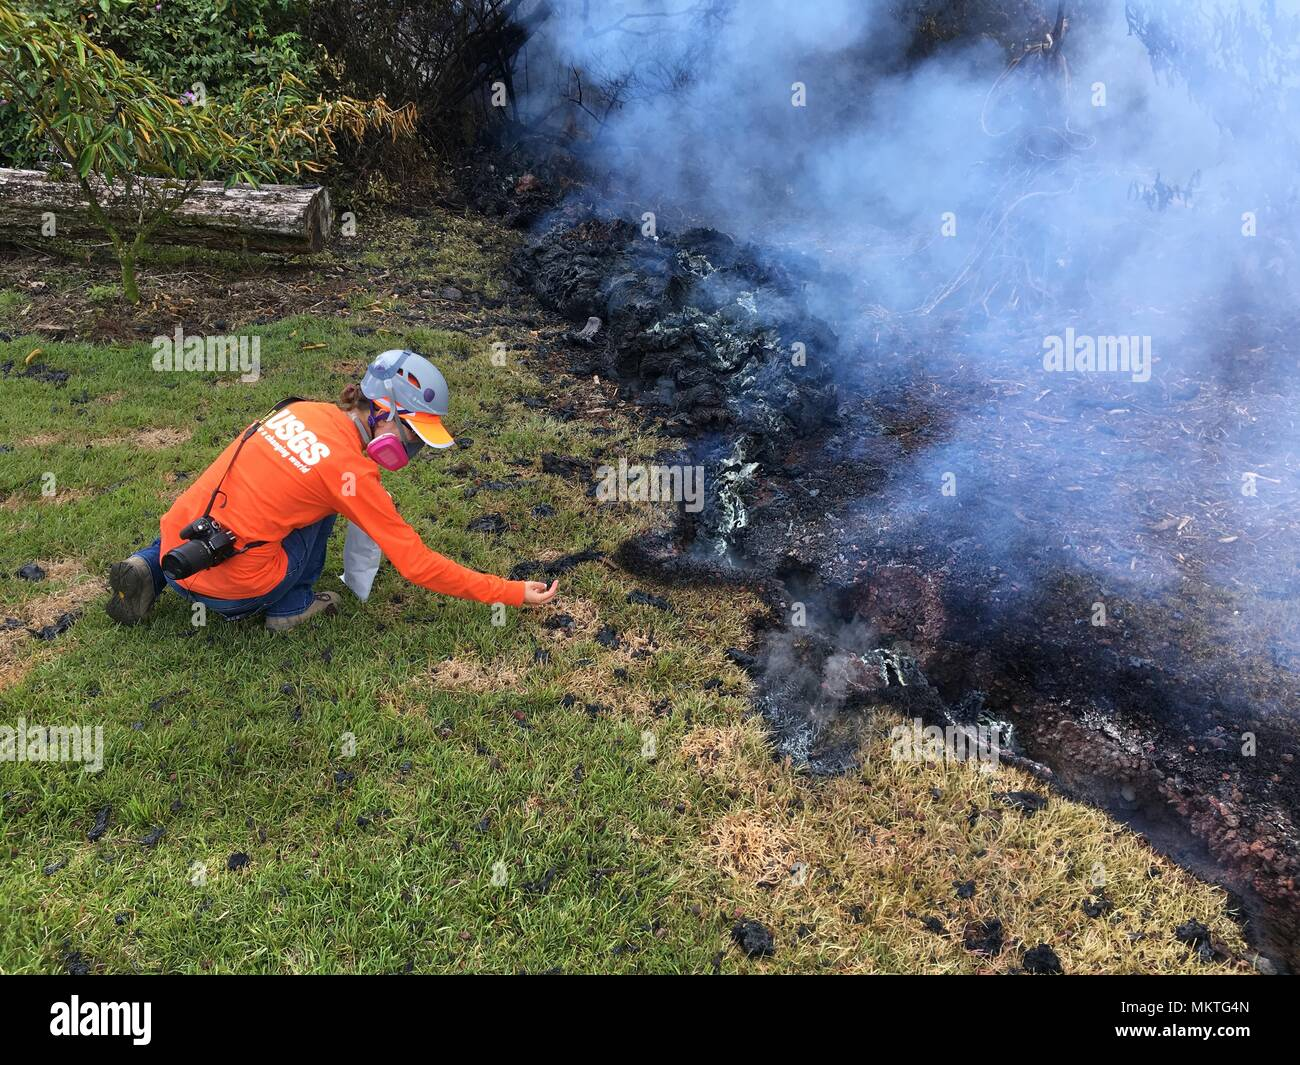 A U.S. Geologic Survey scientist gathers samples of lava splatter from the Kilauea volcanic eruption along Malama and Pomaikai Streets May 6, 2018 in Leilani Estates, Hawaii. The recent eruption continues destroying homes, forcing evacuations and spewing lava and poison gas on the Big Island of Hawaii. - Stock Image